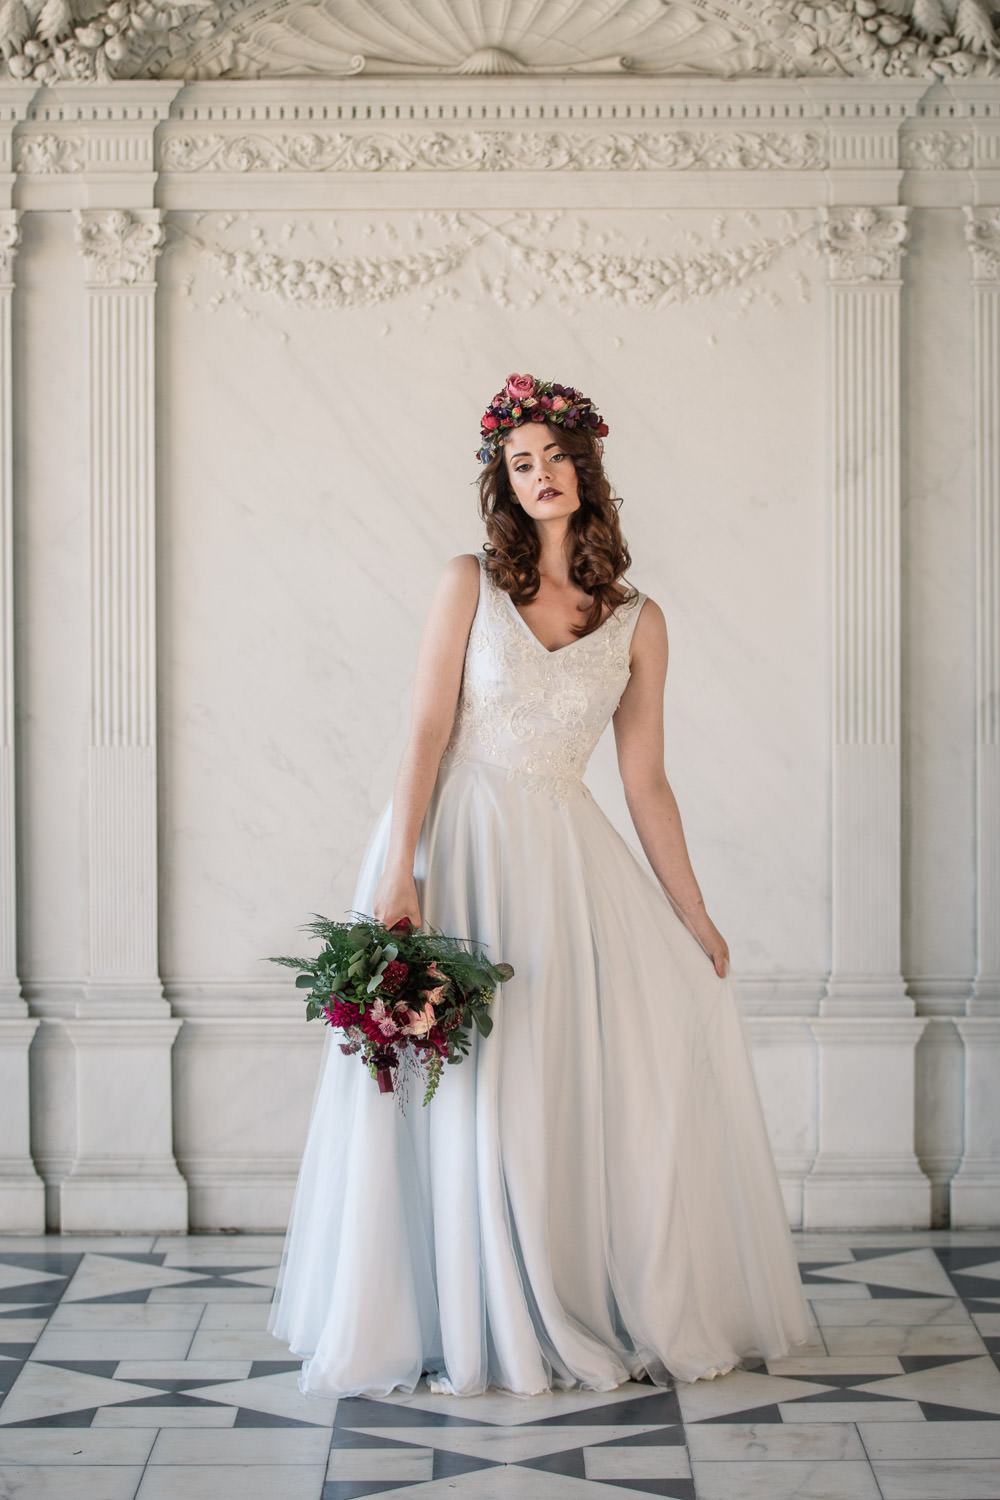 Dress Gown Bride Bridal Blue Silk Chiffon Tulle Skirt Lace Winter Luxe Wedding Ideas Becky Harley Photography